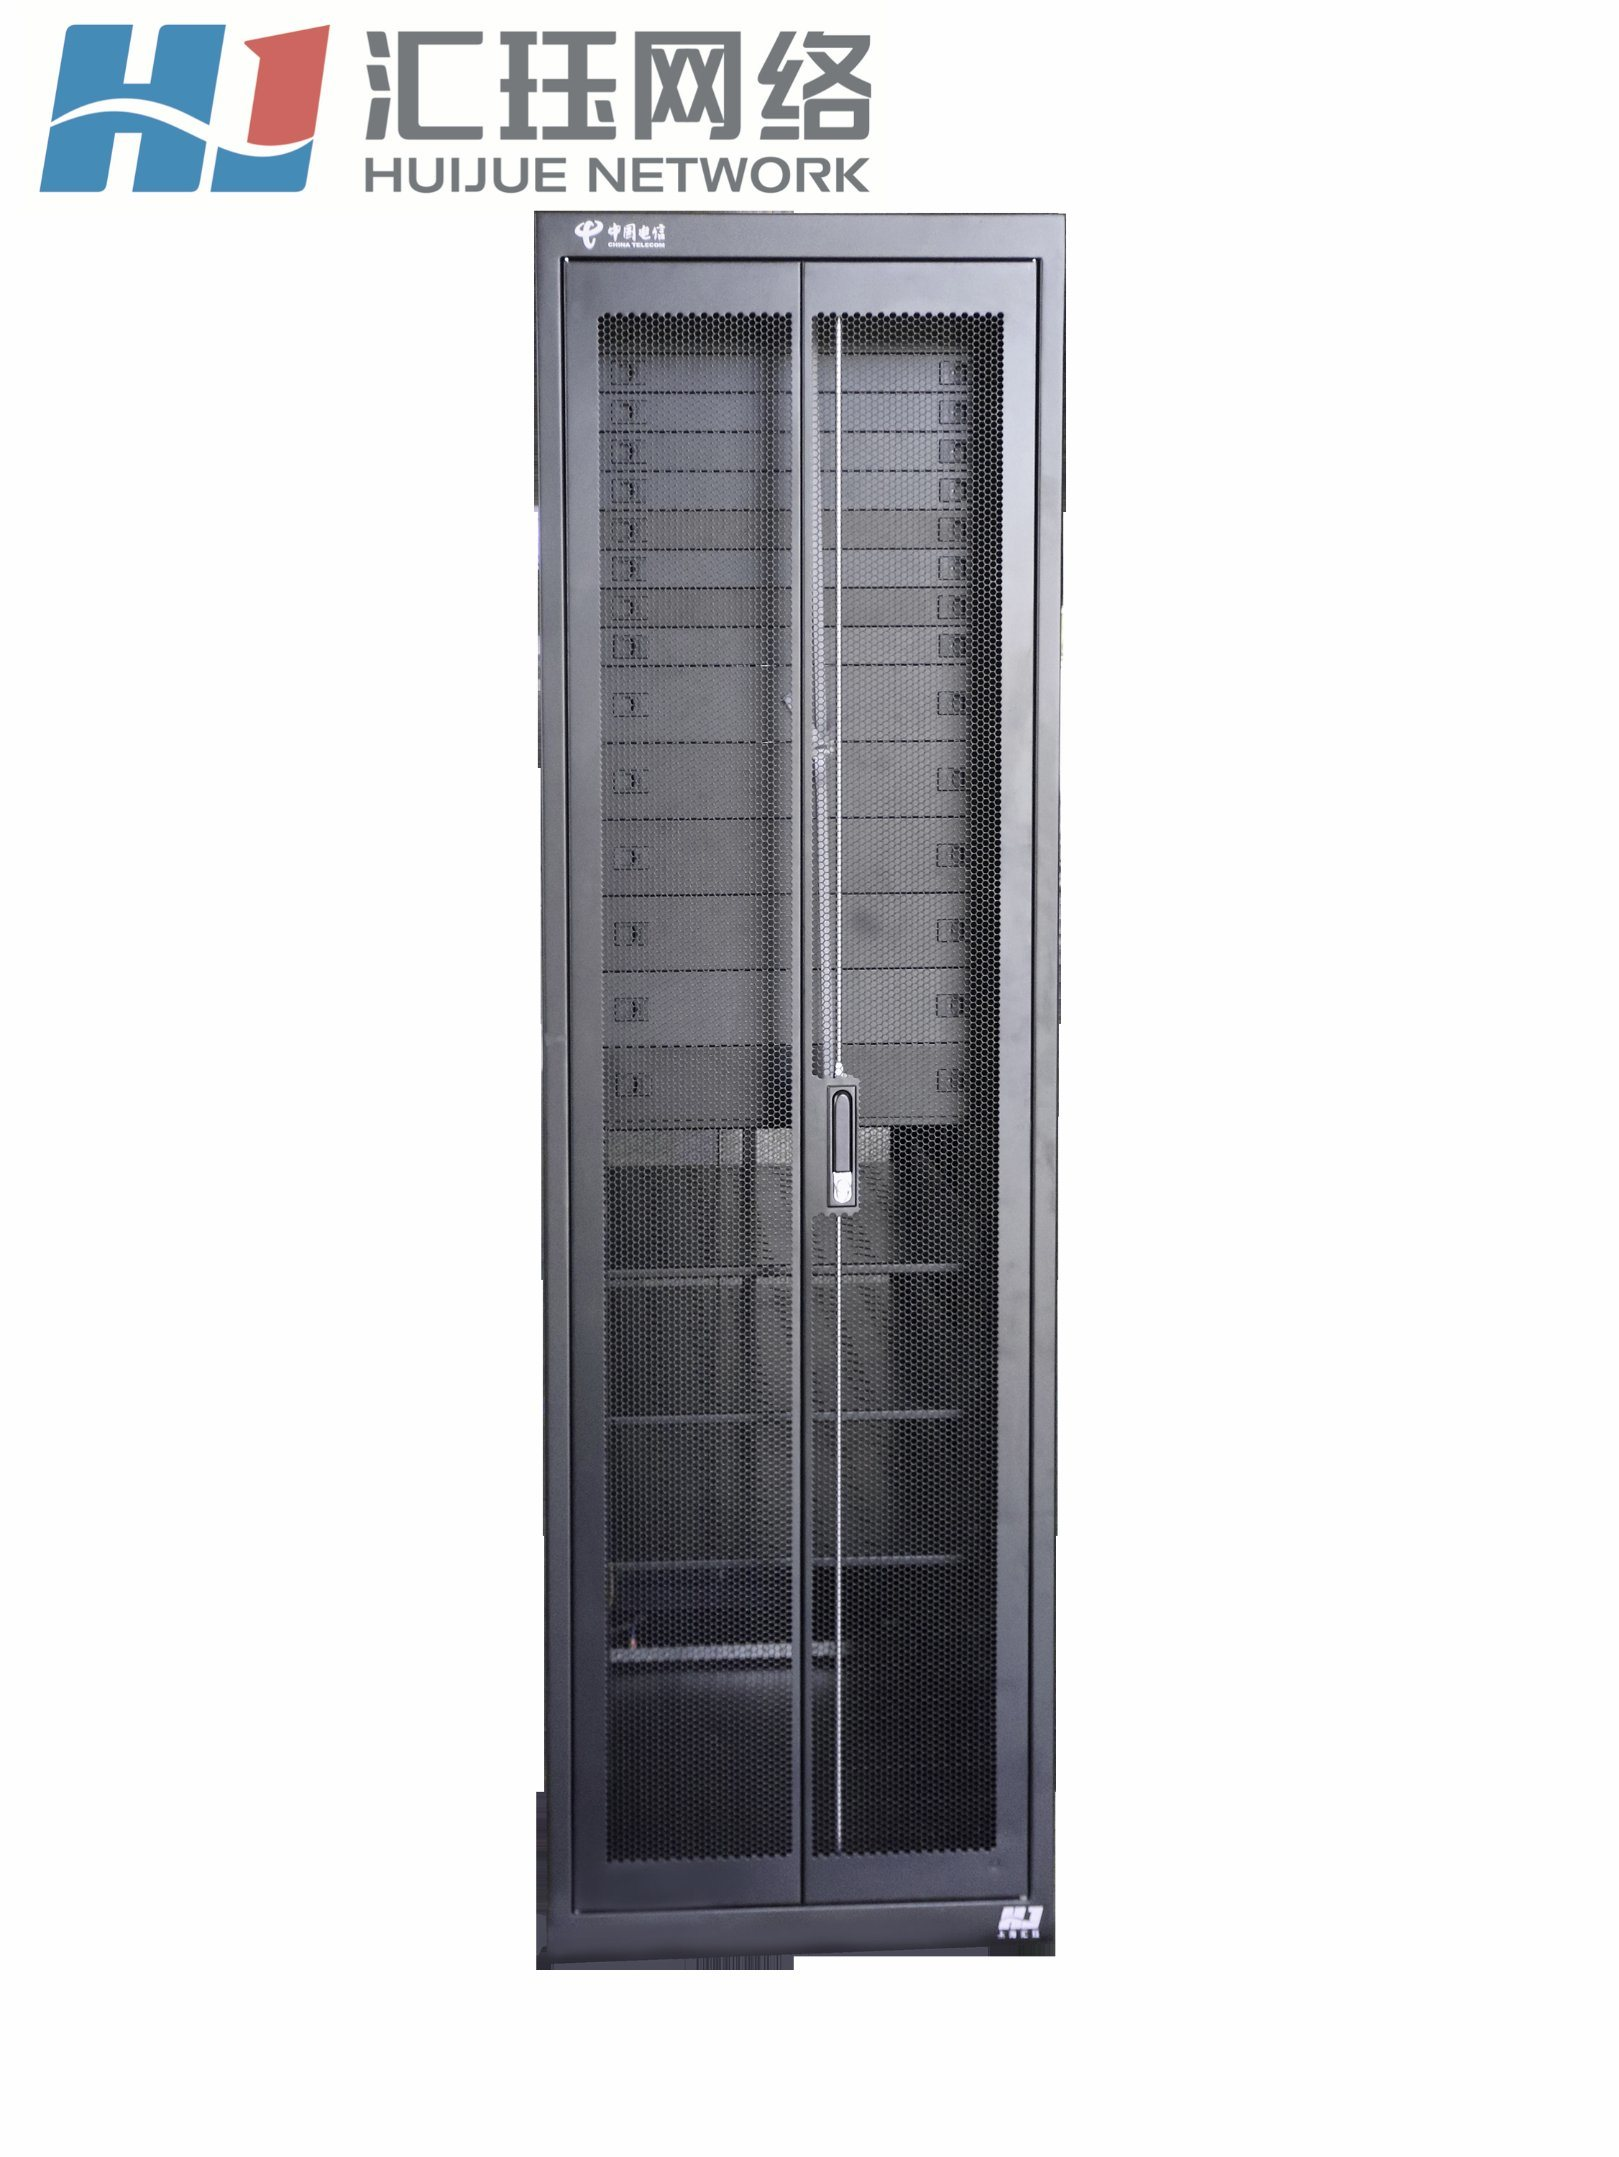 18U 22U 27U 32U 37U 42U 50U Data center server room 19 inch network cabinet/rack ACS62107 pictures & photos